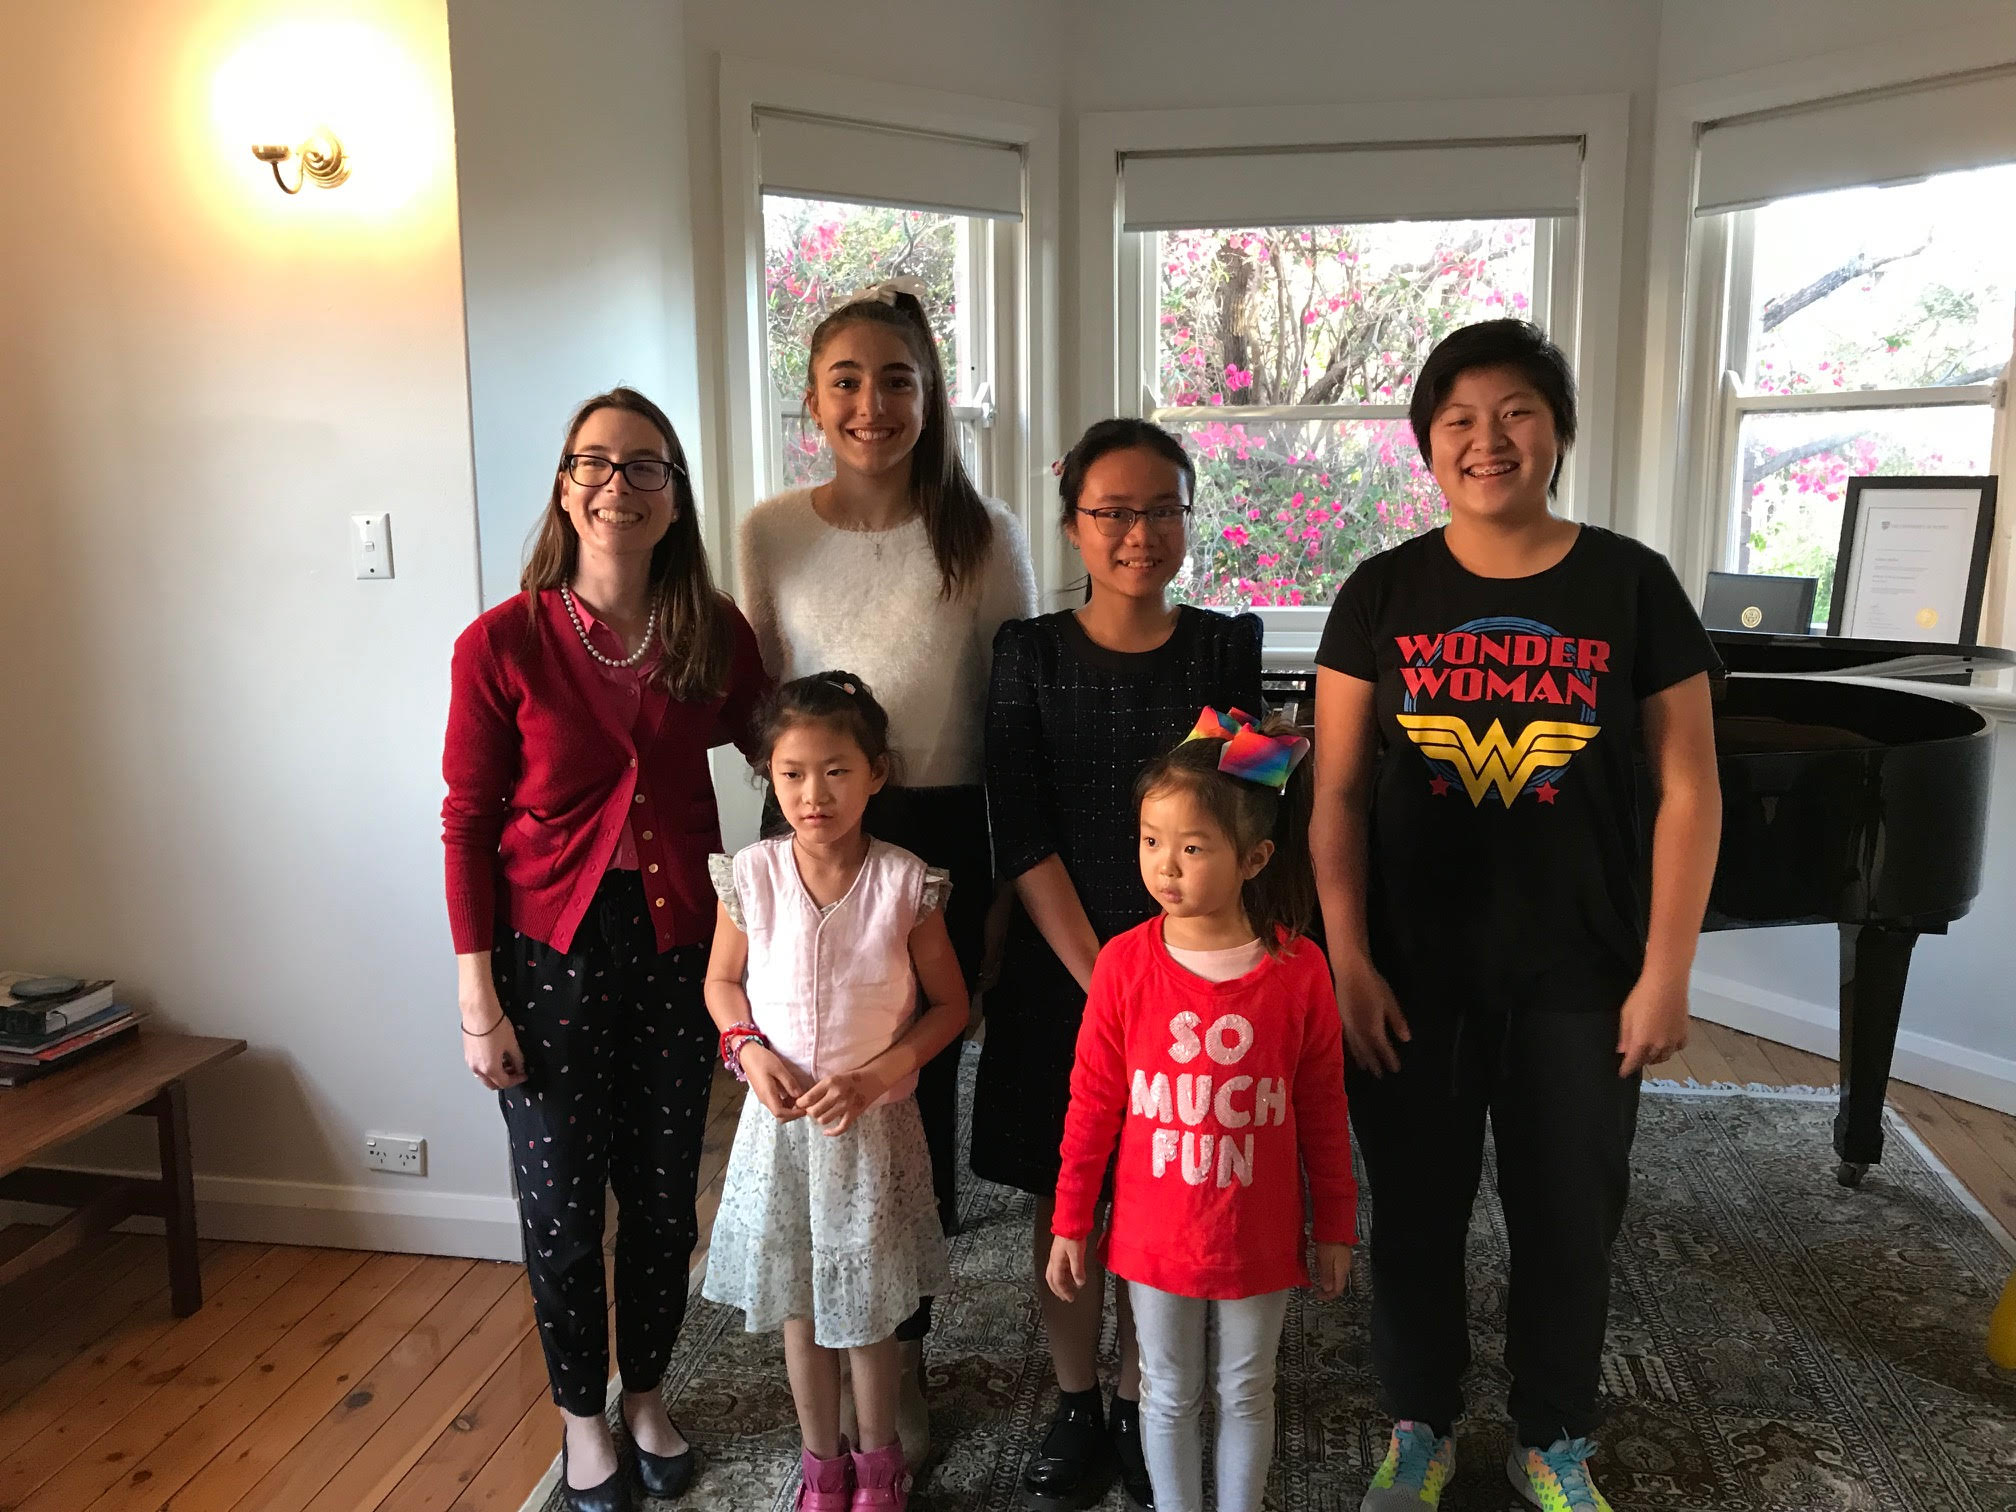 2018 Studio Photos - L-R: Dr. Mellos (left) with students Natalia, Linh, Lynette, Yvonne and Camille on April 29, 2018